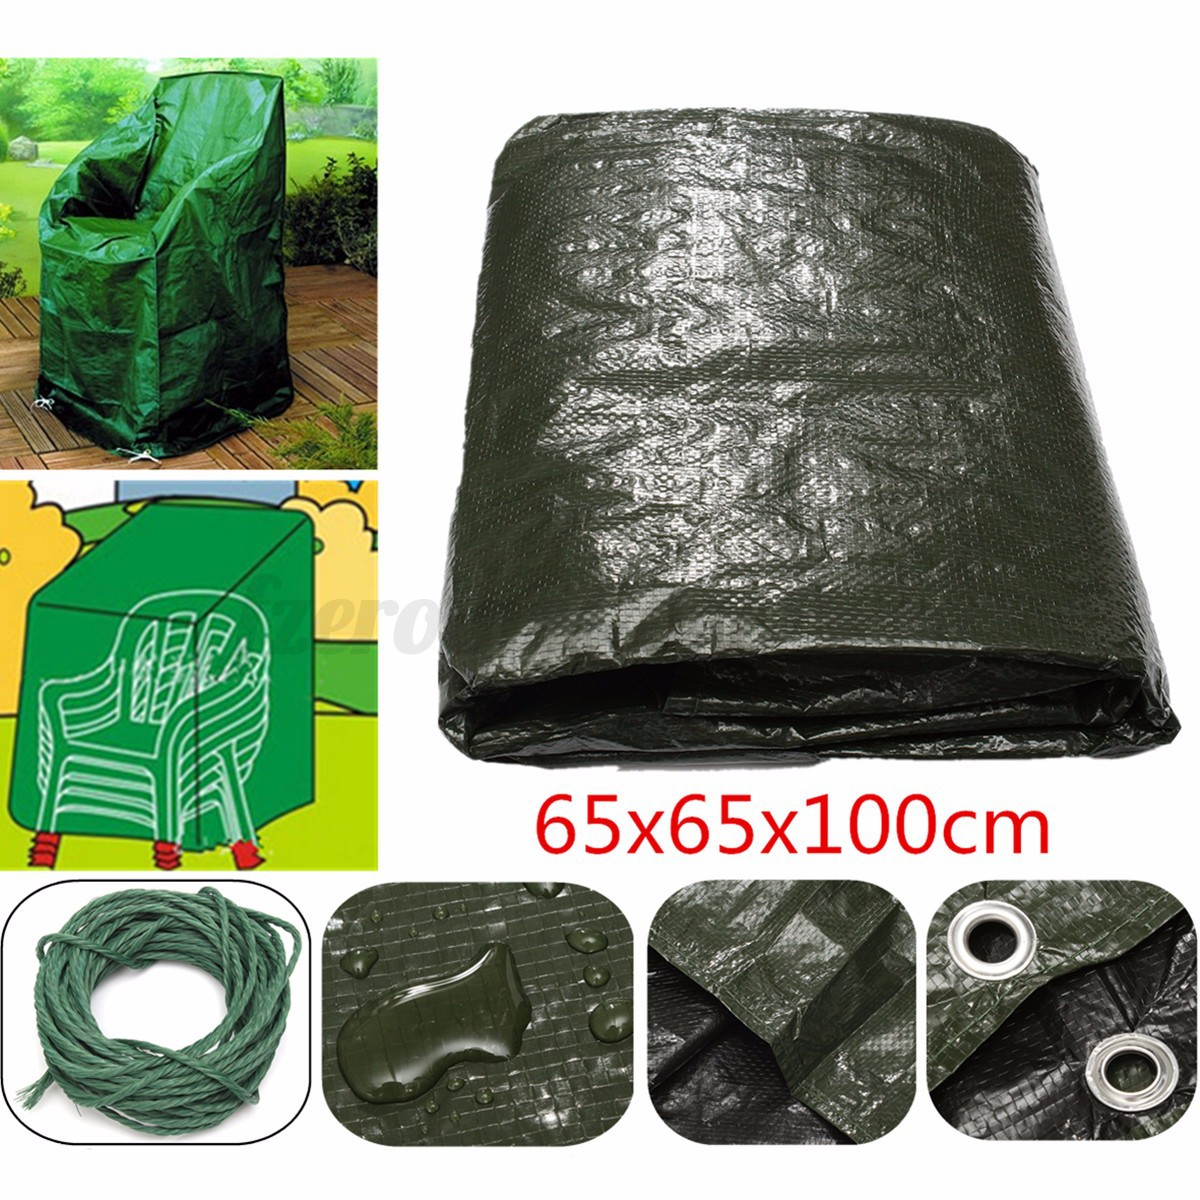 Waterproof Furniture Cover For Outdoor Garden Patio Bench  : 6BD766A79A279096E6E0563747908D9AD6CC029ACD9CC8CECC46D24ACD039E9CD29B26C87BCFD2568313CFD2231BC9CC9E3683CB835644CC939BA0CE73 from www.ebay.com size 1200 x 1200 jpeg 363kB